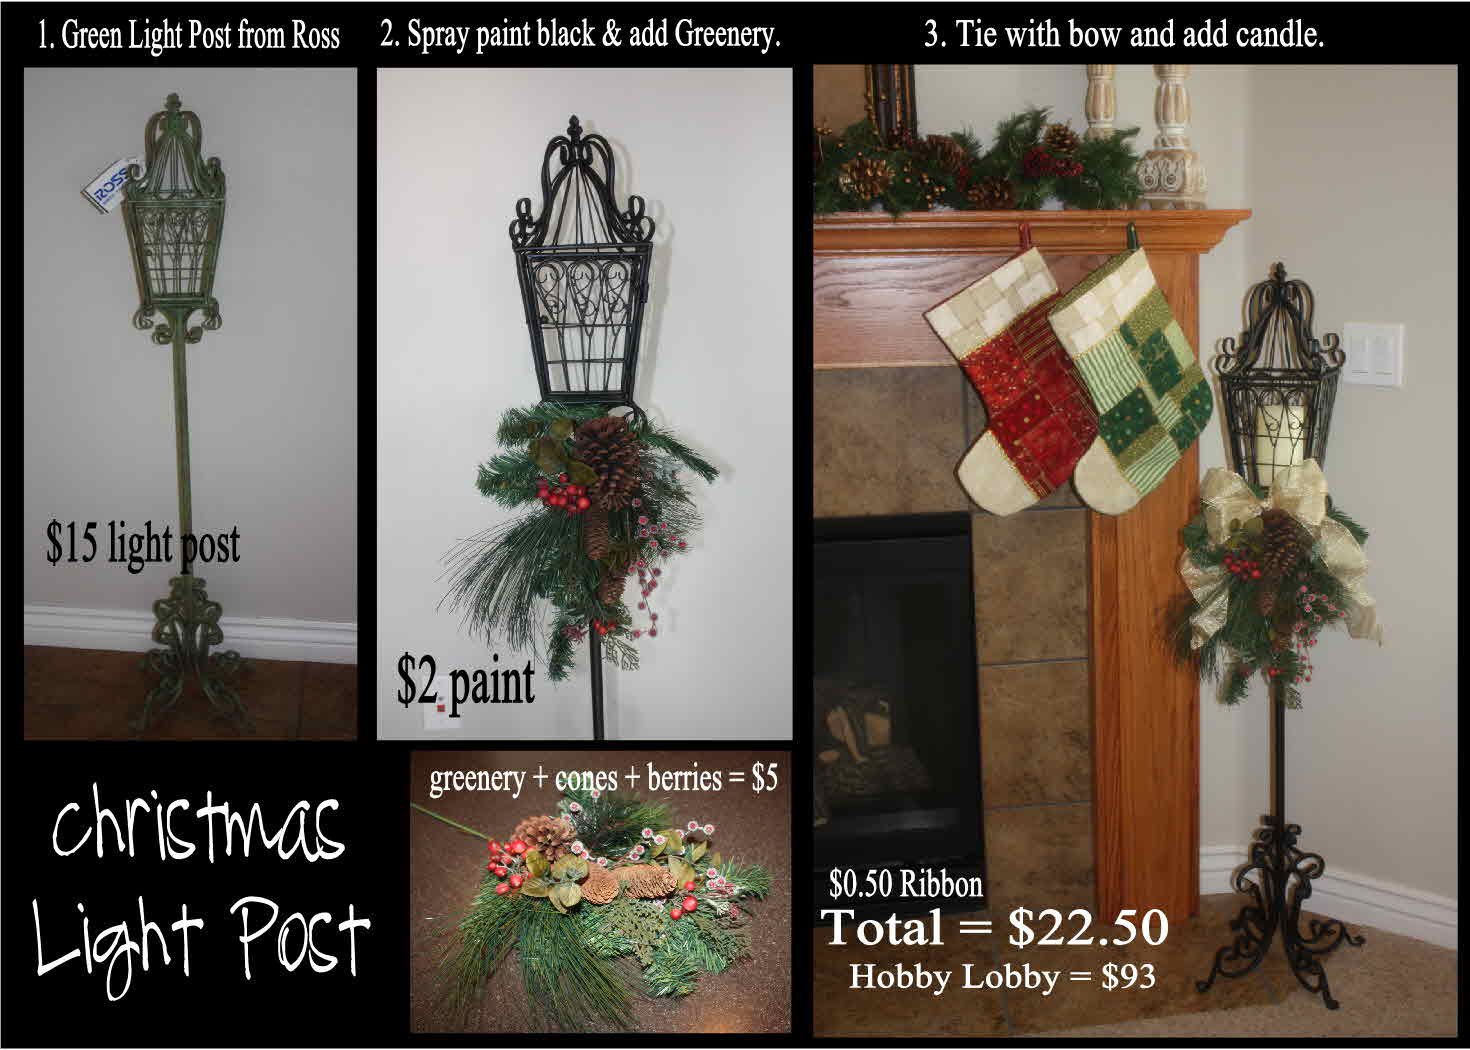 The entire Christmas Light Post was just under $22.50, including tax.